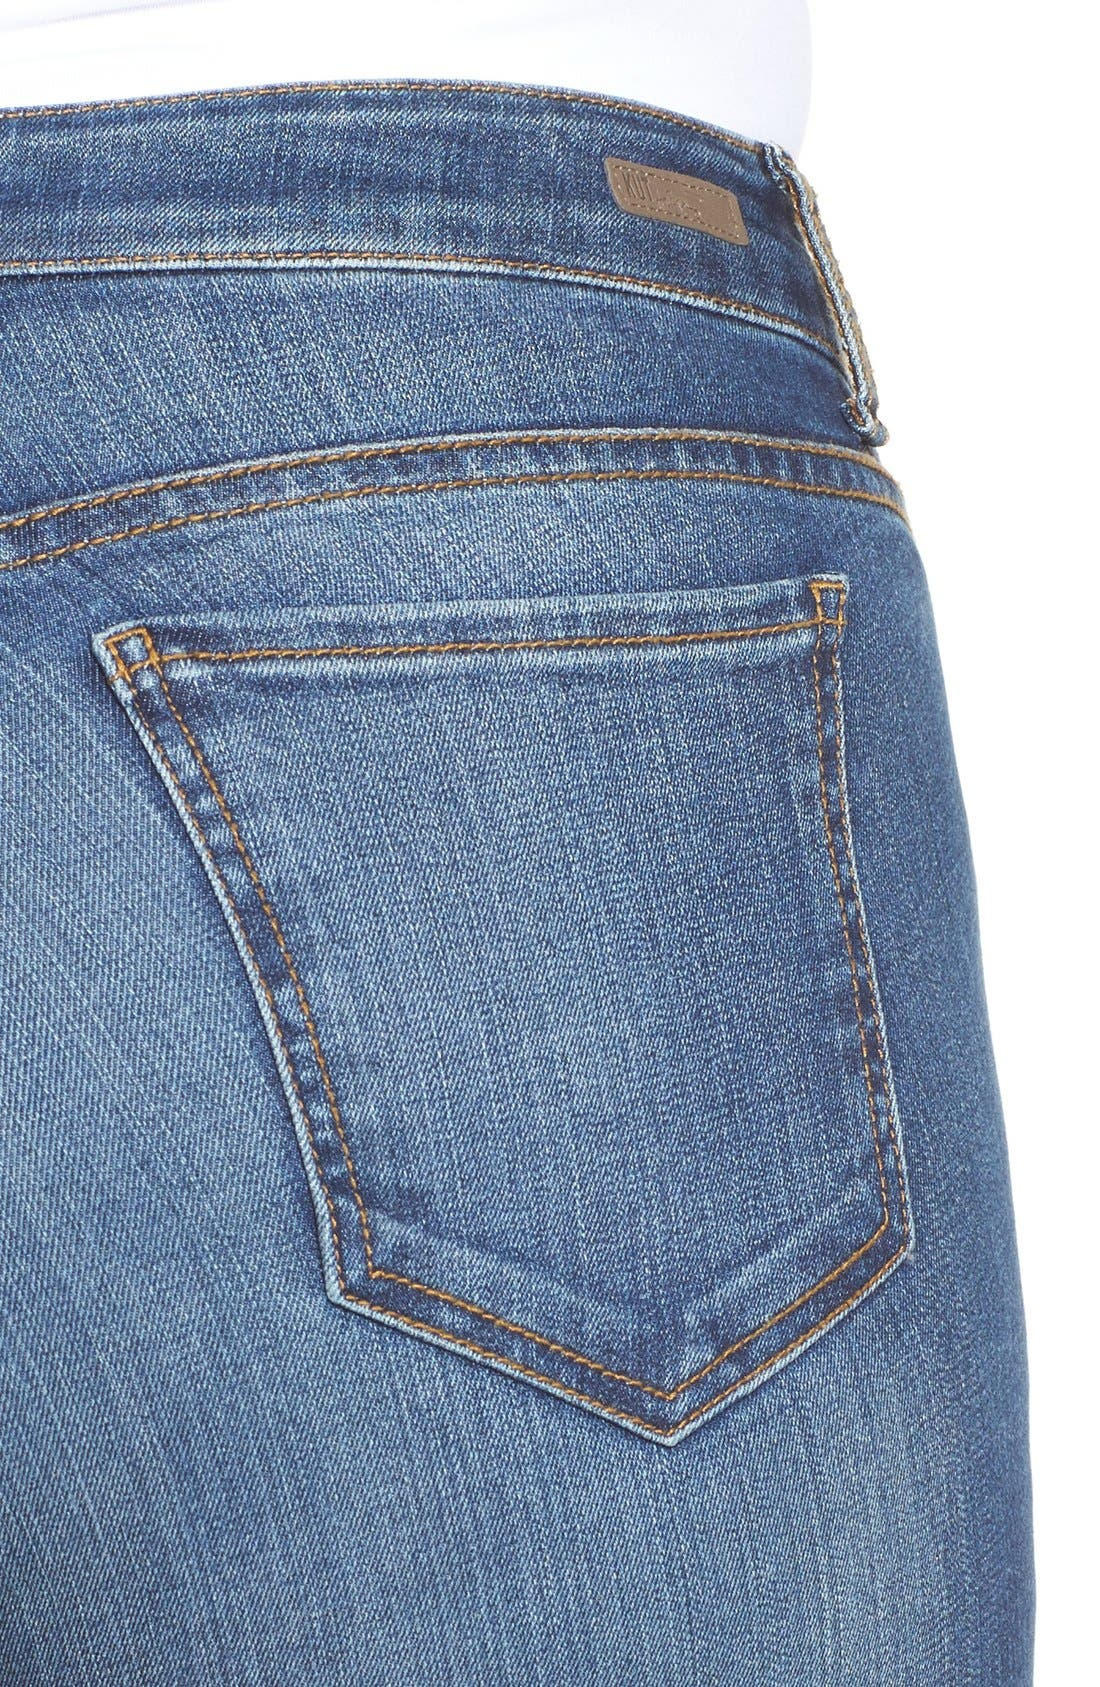 Mia Toothpick Stretch Skinny Jeans,                             Alternate thumbnail 3, color,                             REPOSE